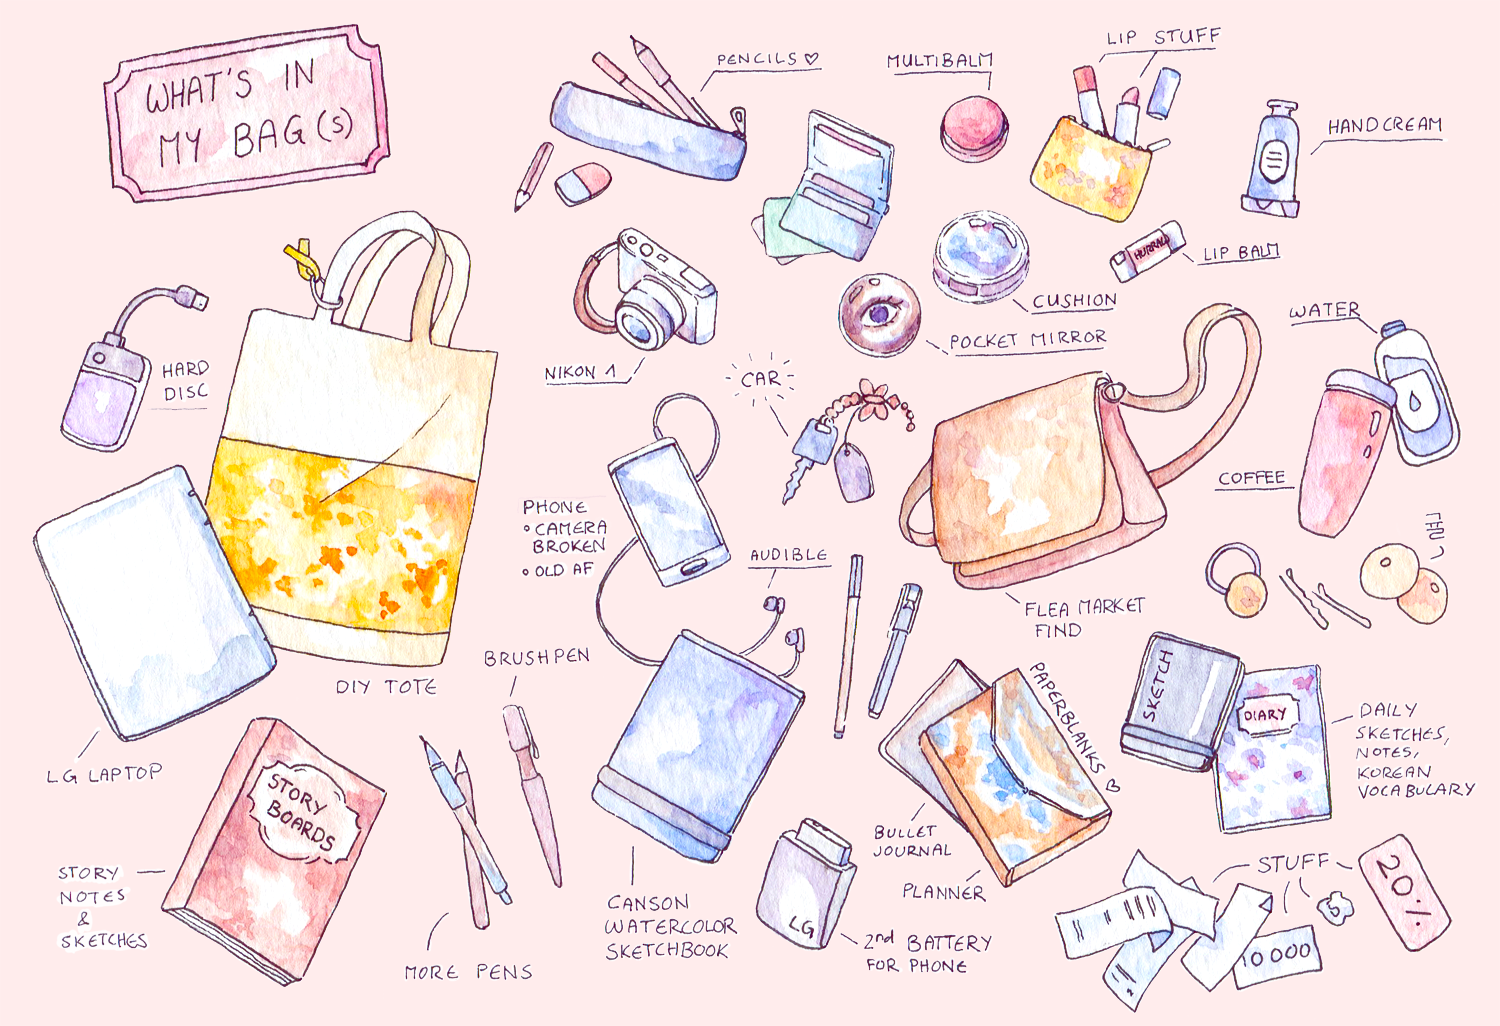 #WIMB What's in my bag illustration, the artist edition! I carry lots and lots of sketchbooks, notebooks, my planners and of course pens. lifestyle illustration, artist life & supplies, art materials.